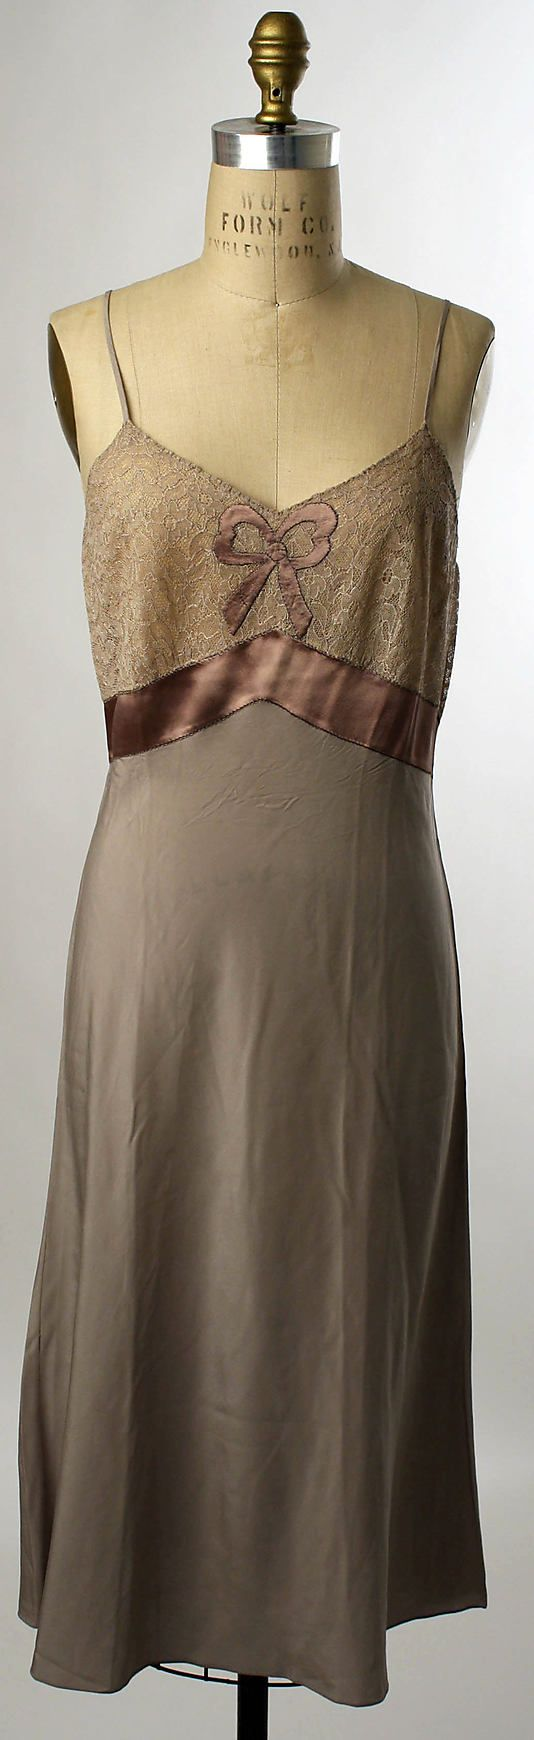 Slip  Date: 1930s Culture: French Medium: [no medium available]